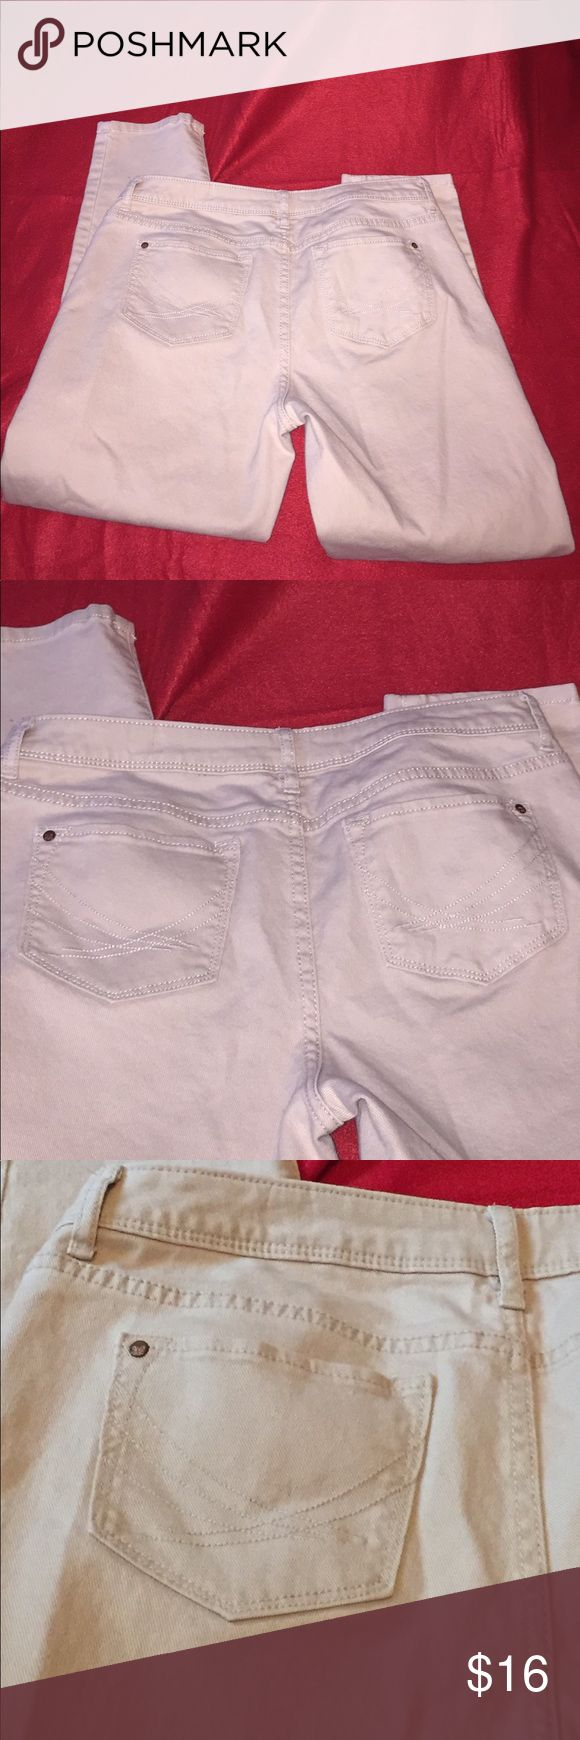 💥CLEARANCE💥Vera Wang Tan Skinny Jeans Soft material with limited wear. Vera Wang Pants Skinny